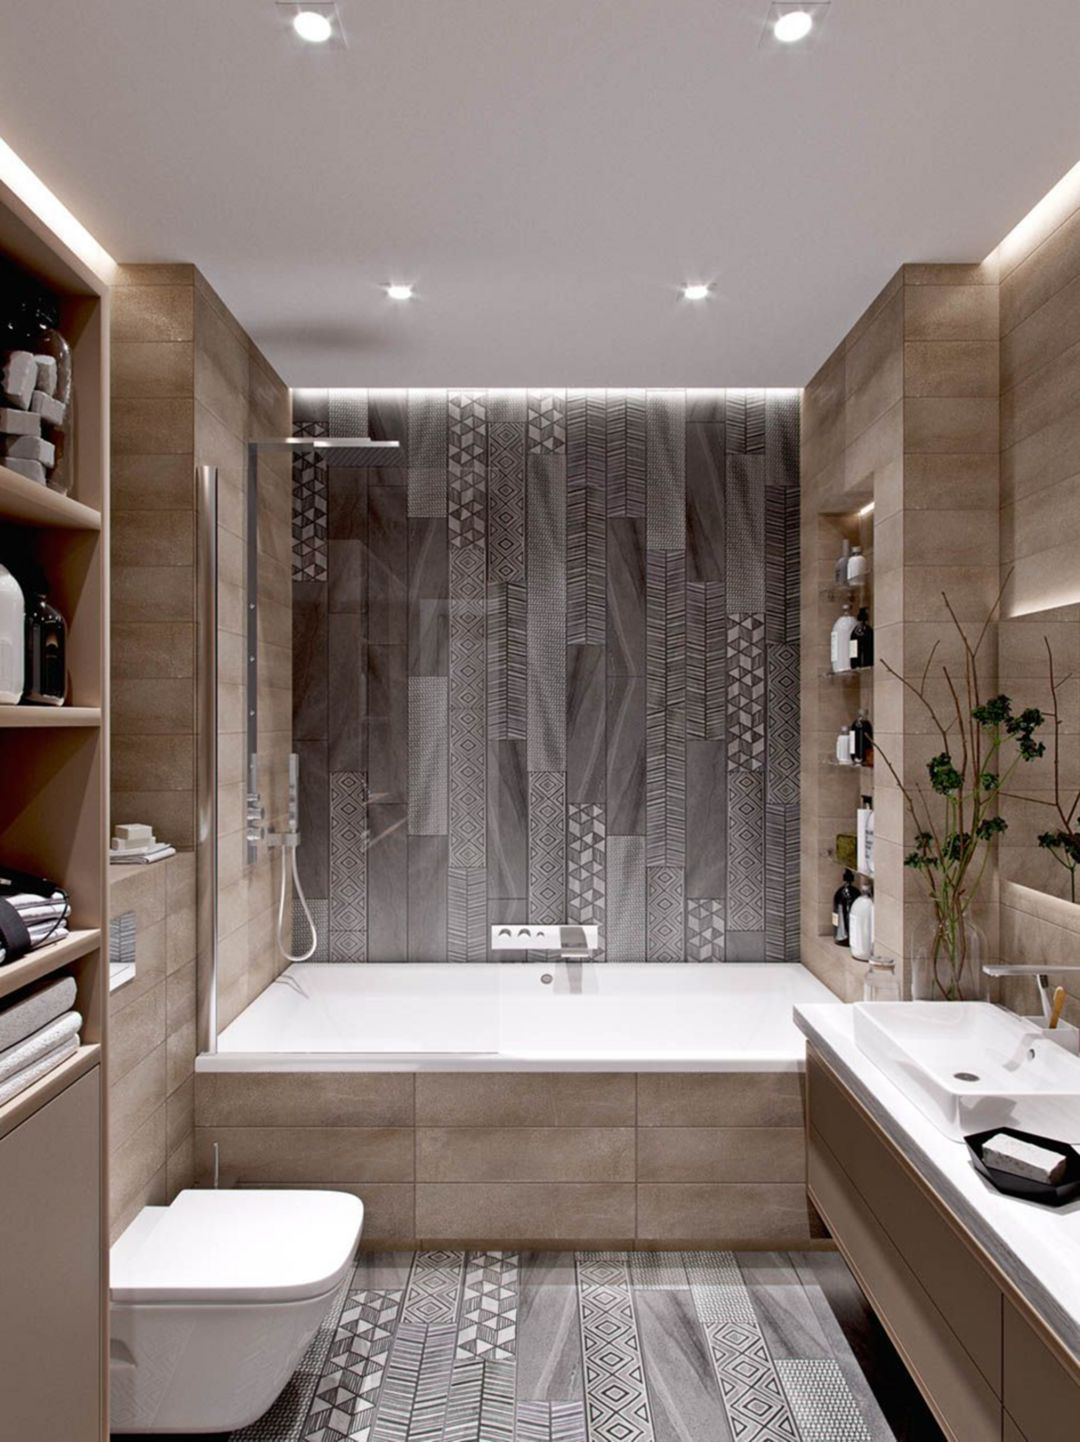 10 Magnificent Modern Small Bathroom Design Ideas For Your Calm